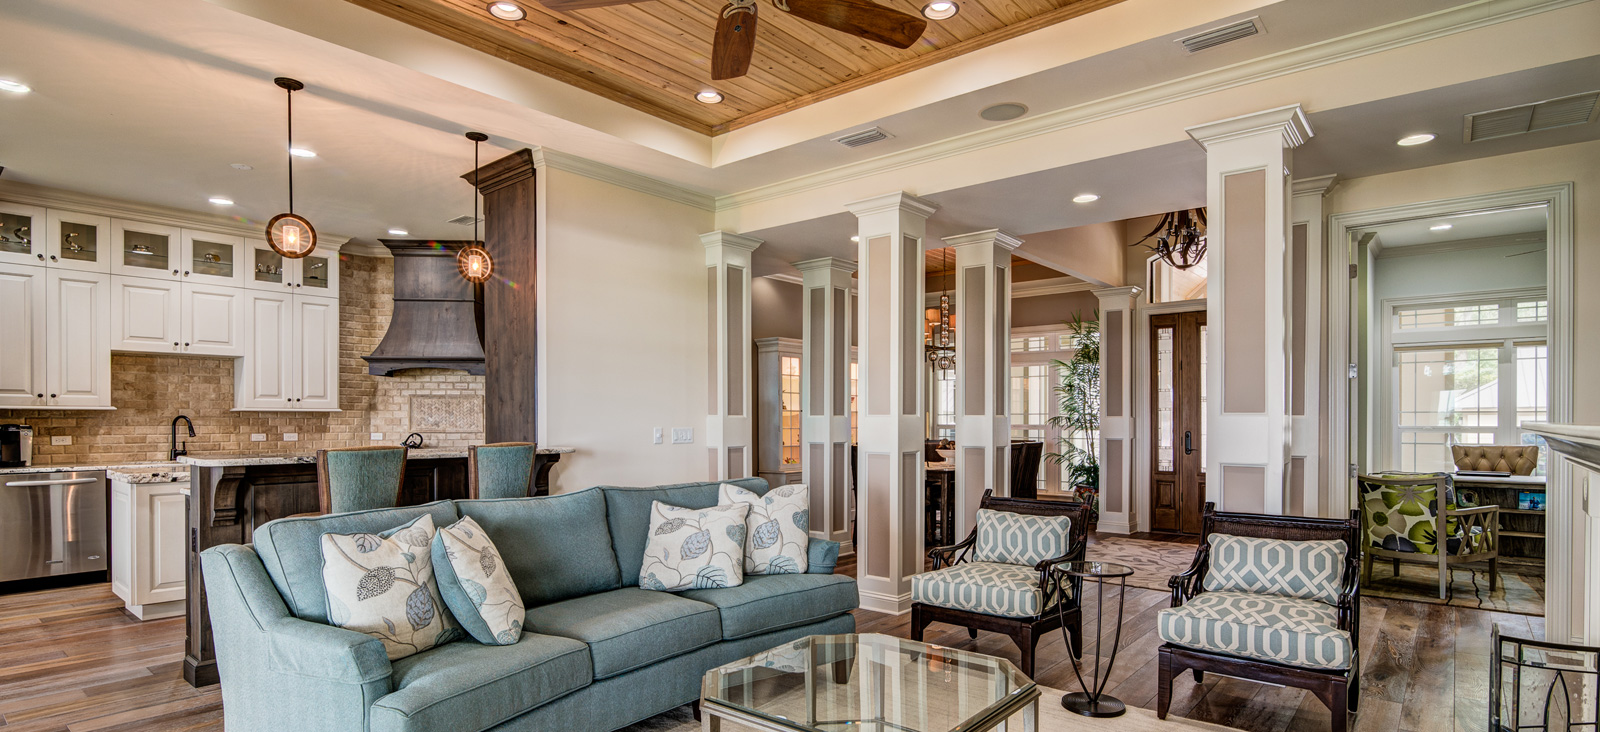 Generation homes custom home builder in ne florida for Generation homes